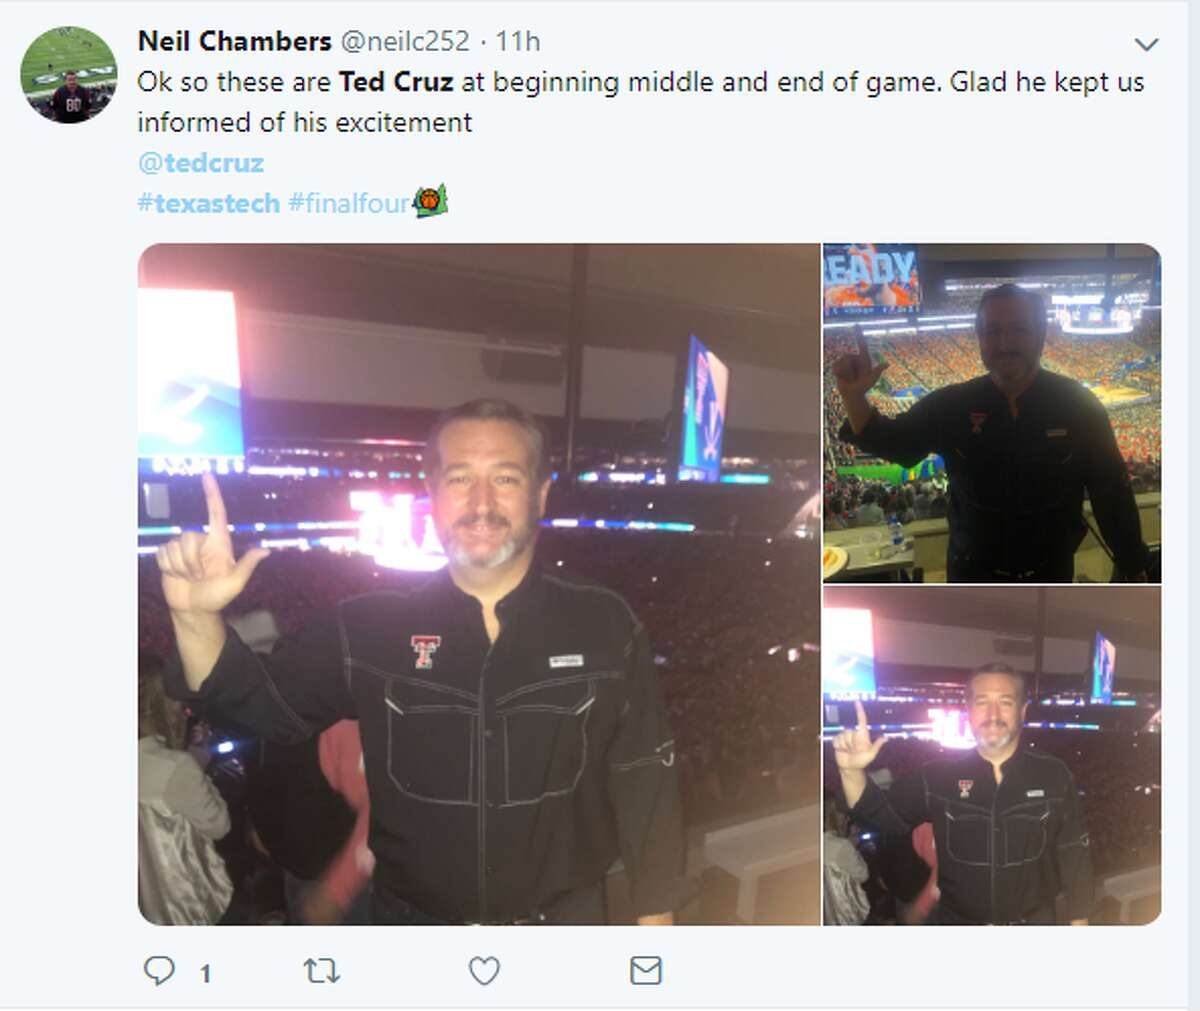 So these are Ted Cruz at the beginning middle and end of the game. Glad he kept us informed of his excitement. @tedcruz #texastech #finalfour Twitter account:@neilc252